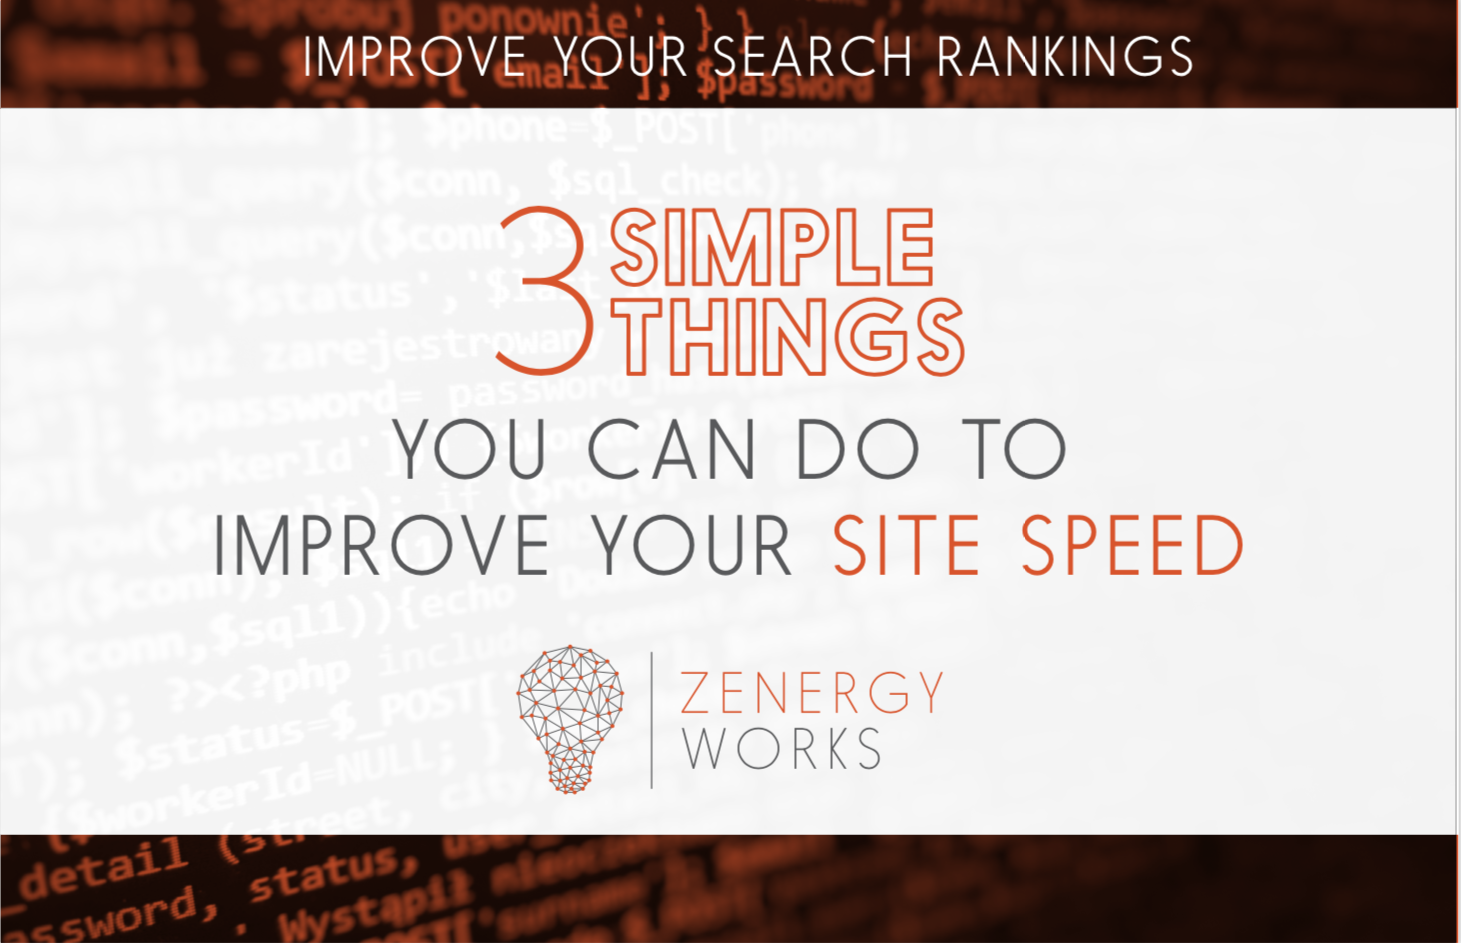 3 Simple Things You Can Do to Improve Your Site Speed